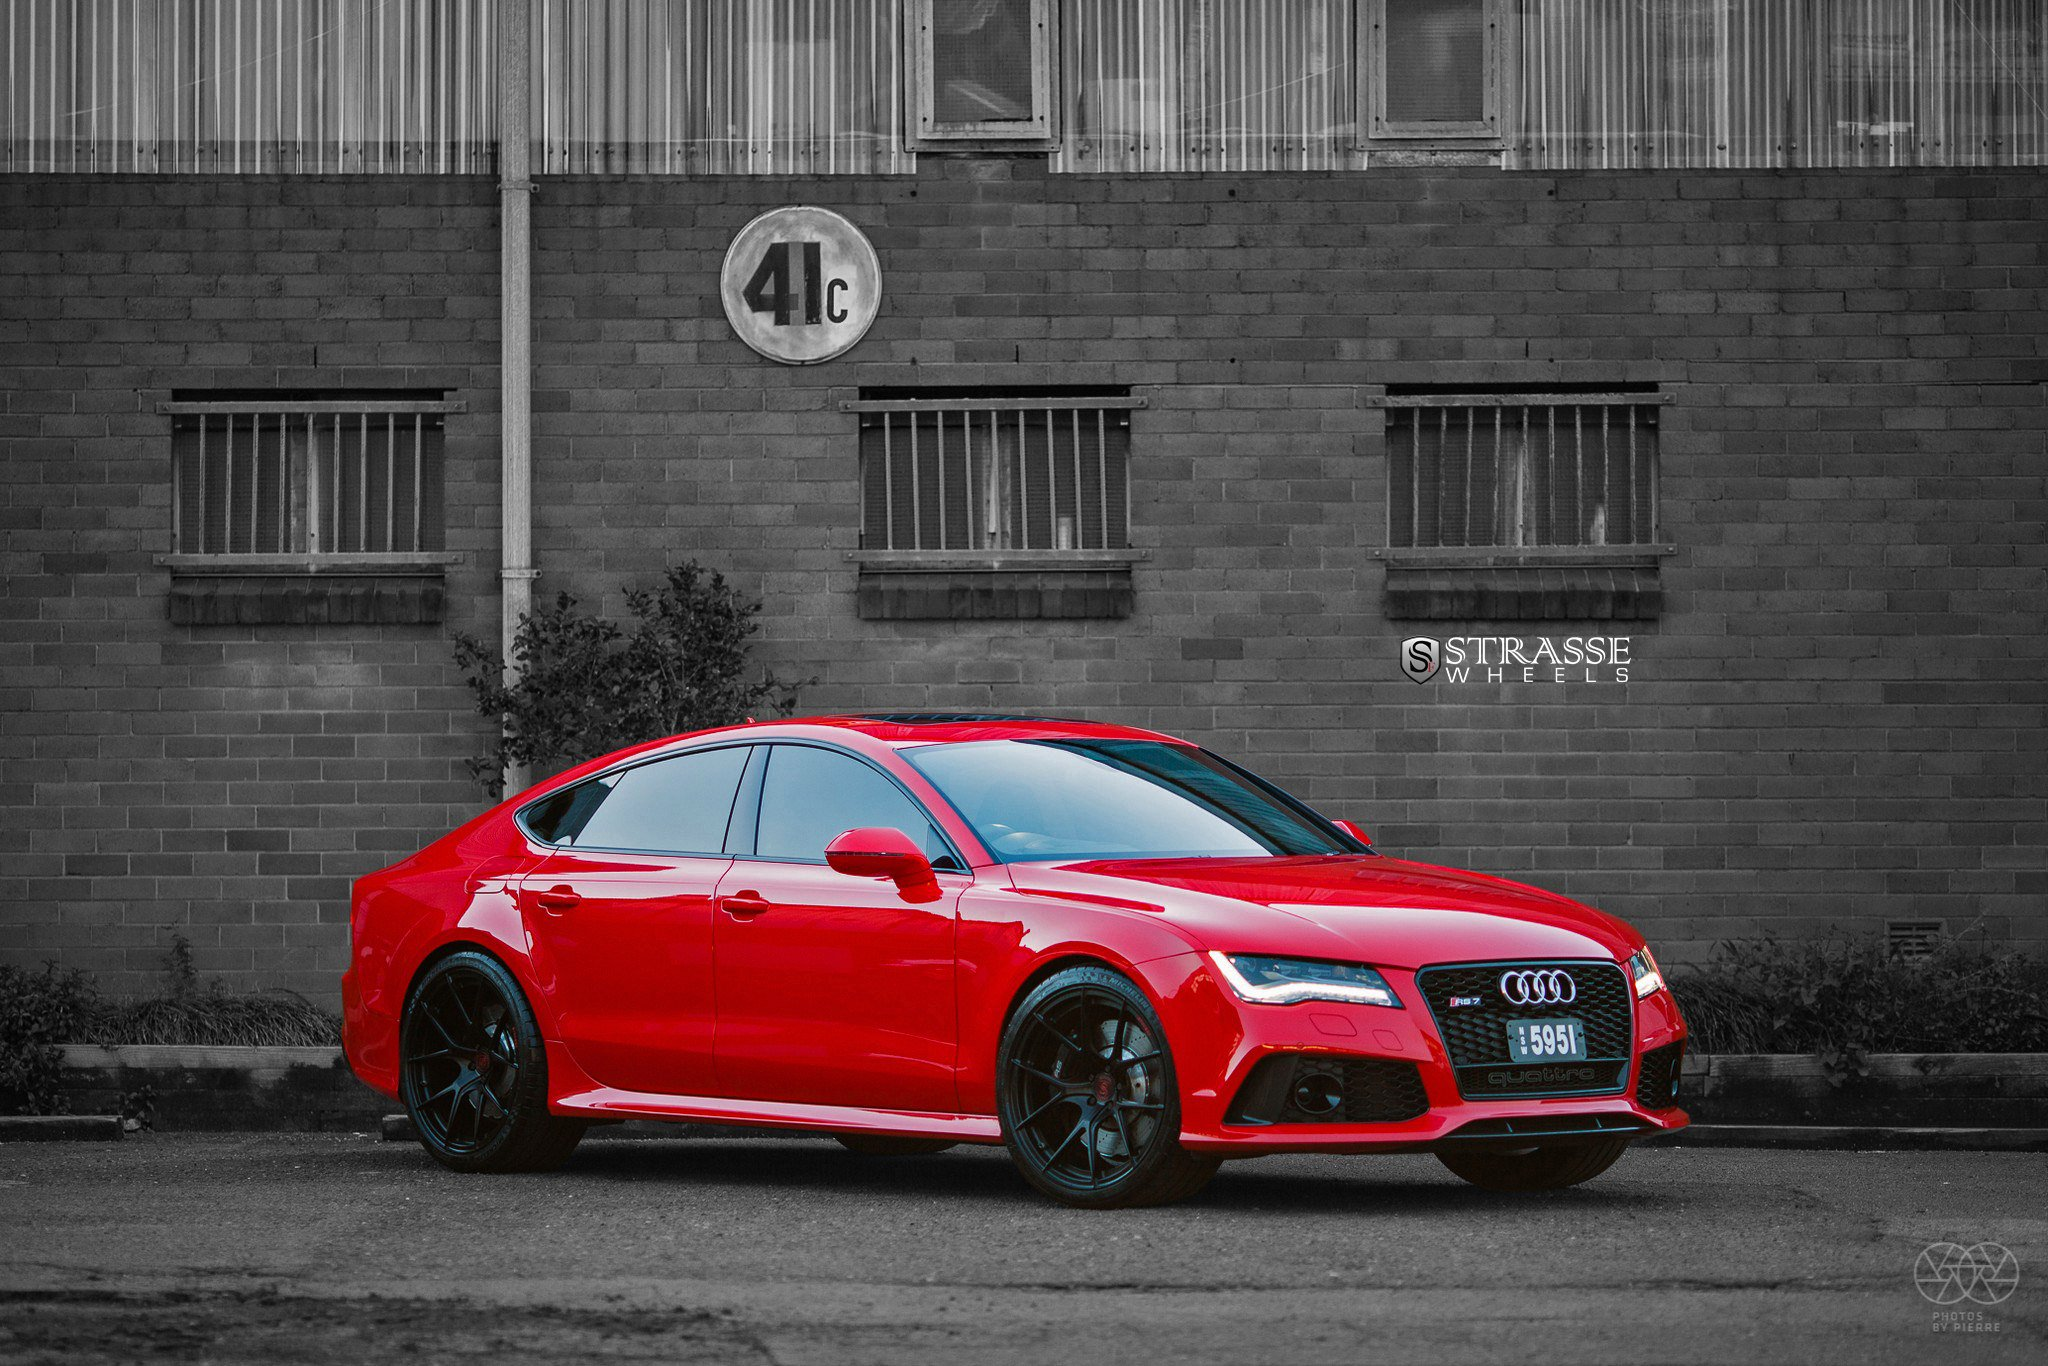 strasse wheels gallery audi rs7 red cars coupe wallpaper 2048x1366 823295 wallpaperup. Black Bedroom Furniture Sets. Home Design Ideas